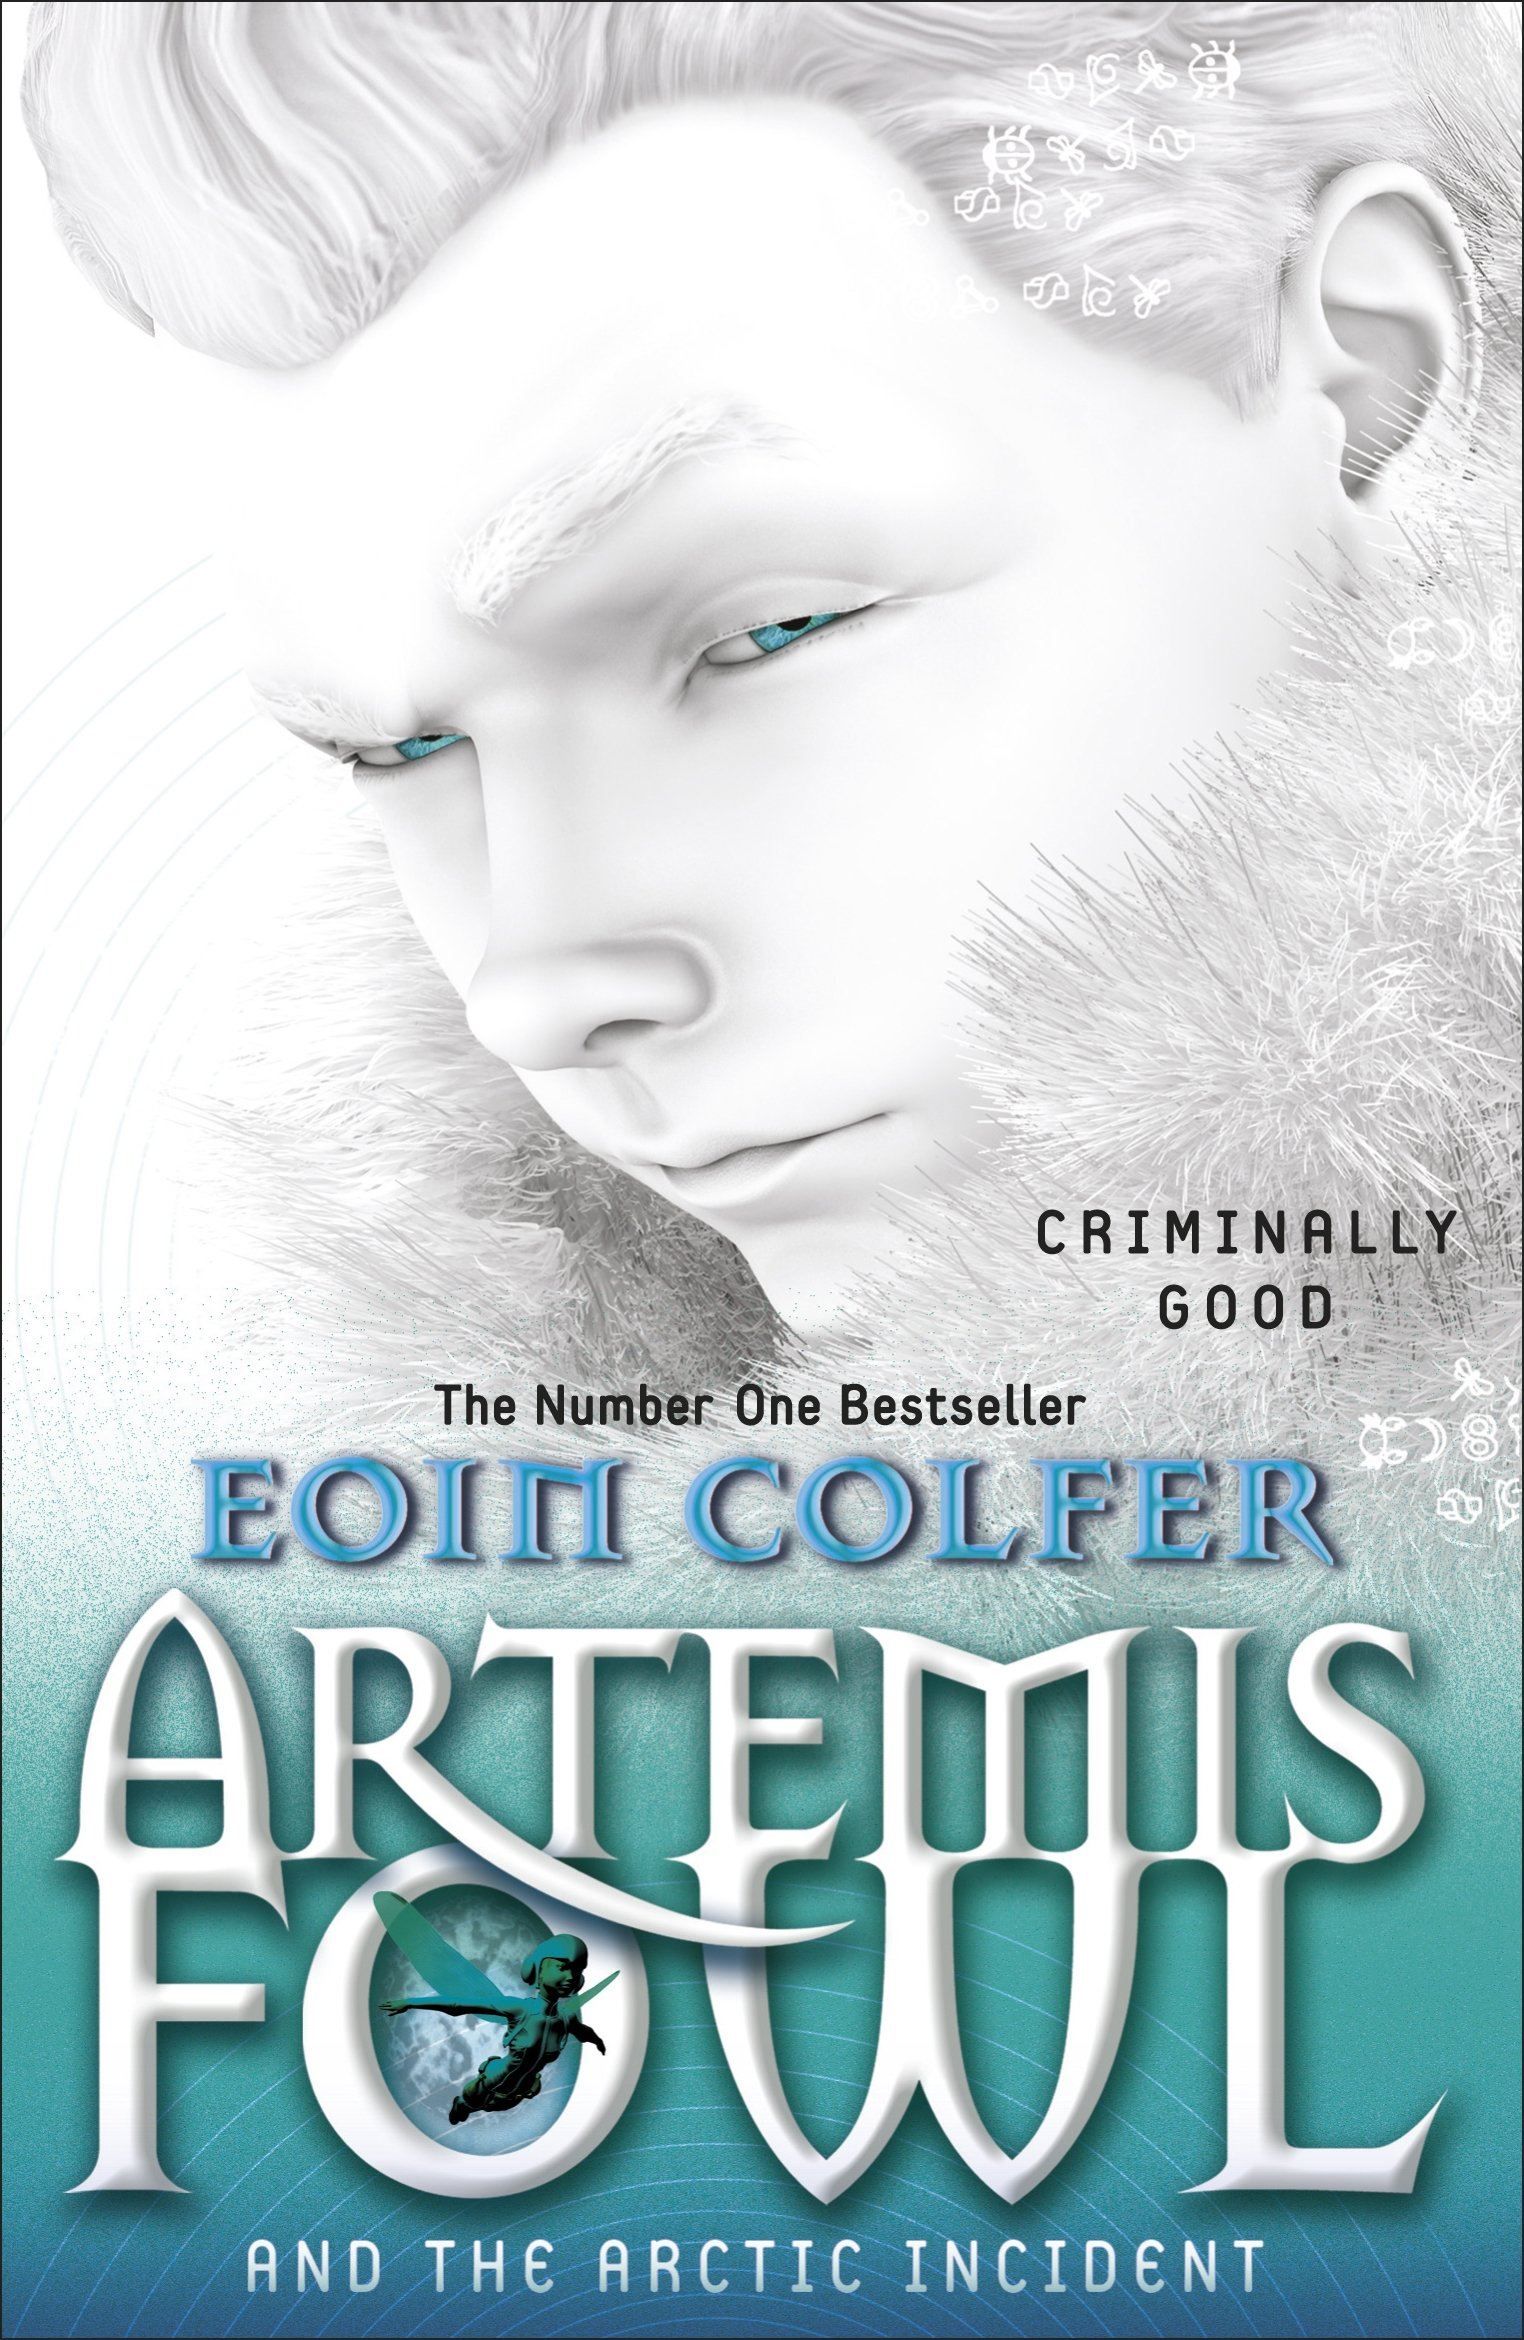 Buy Artemis Fowl And The Arctic Incident Book Online At Low Prices In India   Artemis Fowl And The Arctic Incident Reviews & Ratings  Amazon